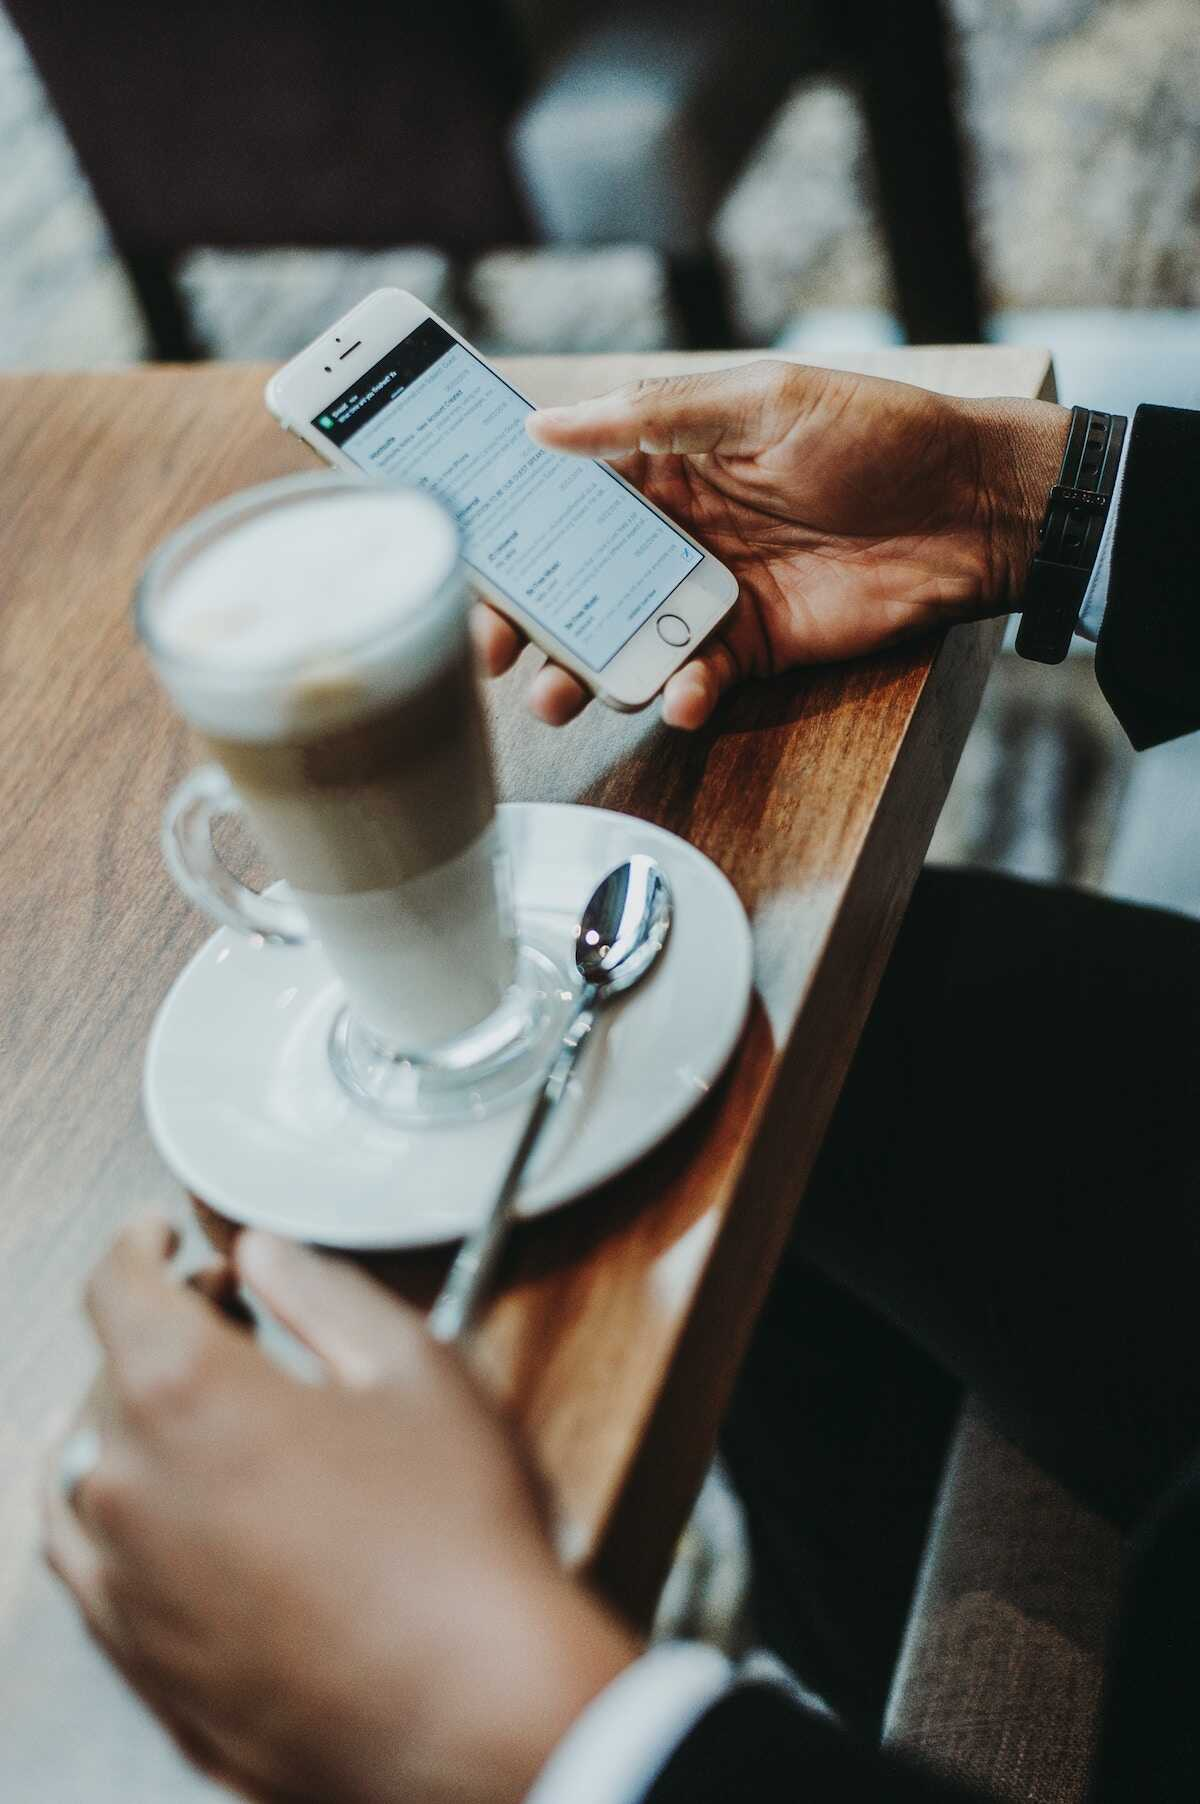 Hand holding an iPhone in a coffee shop alongside a latte